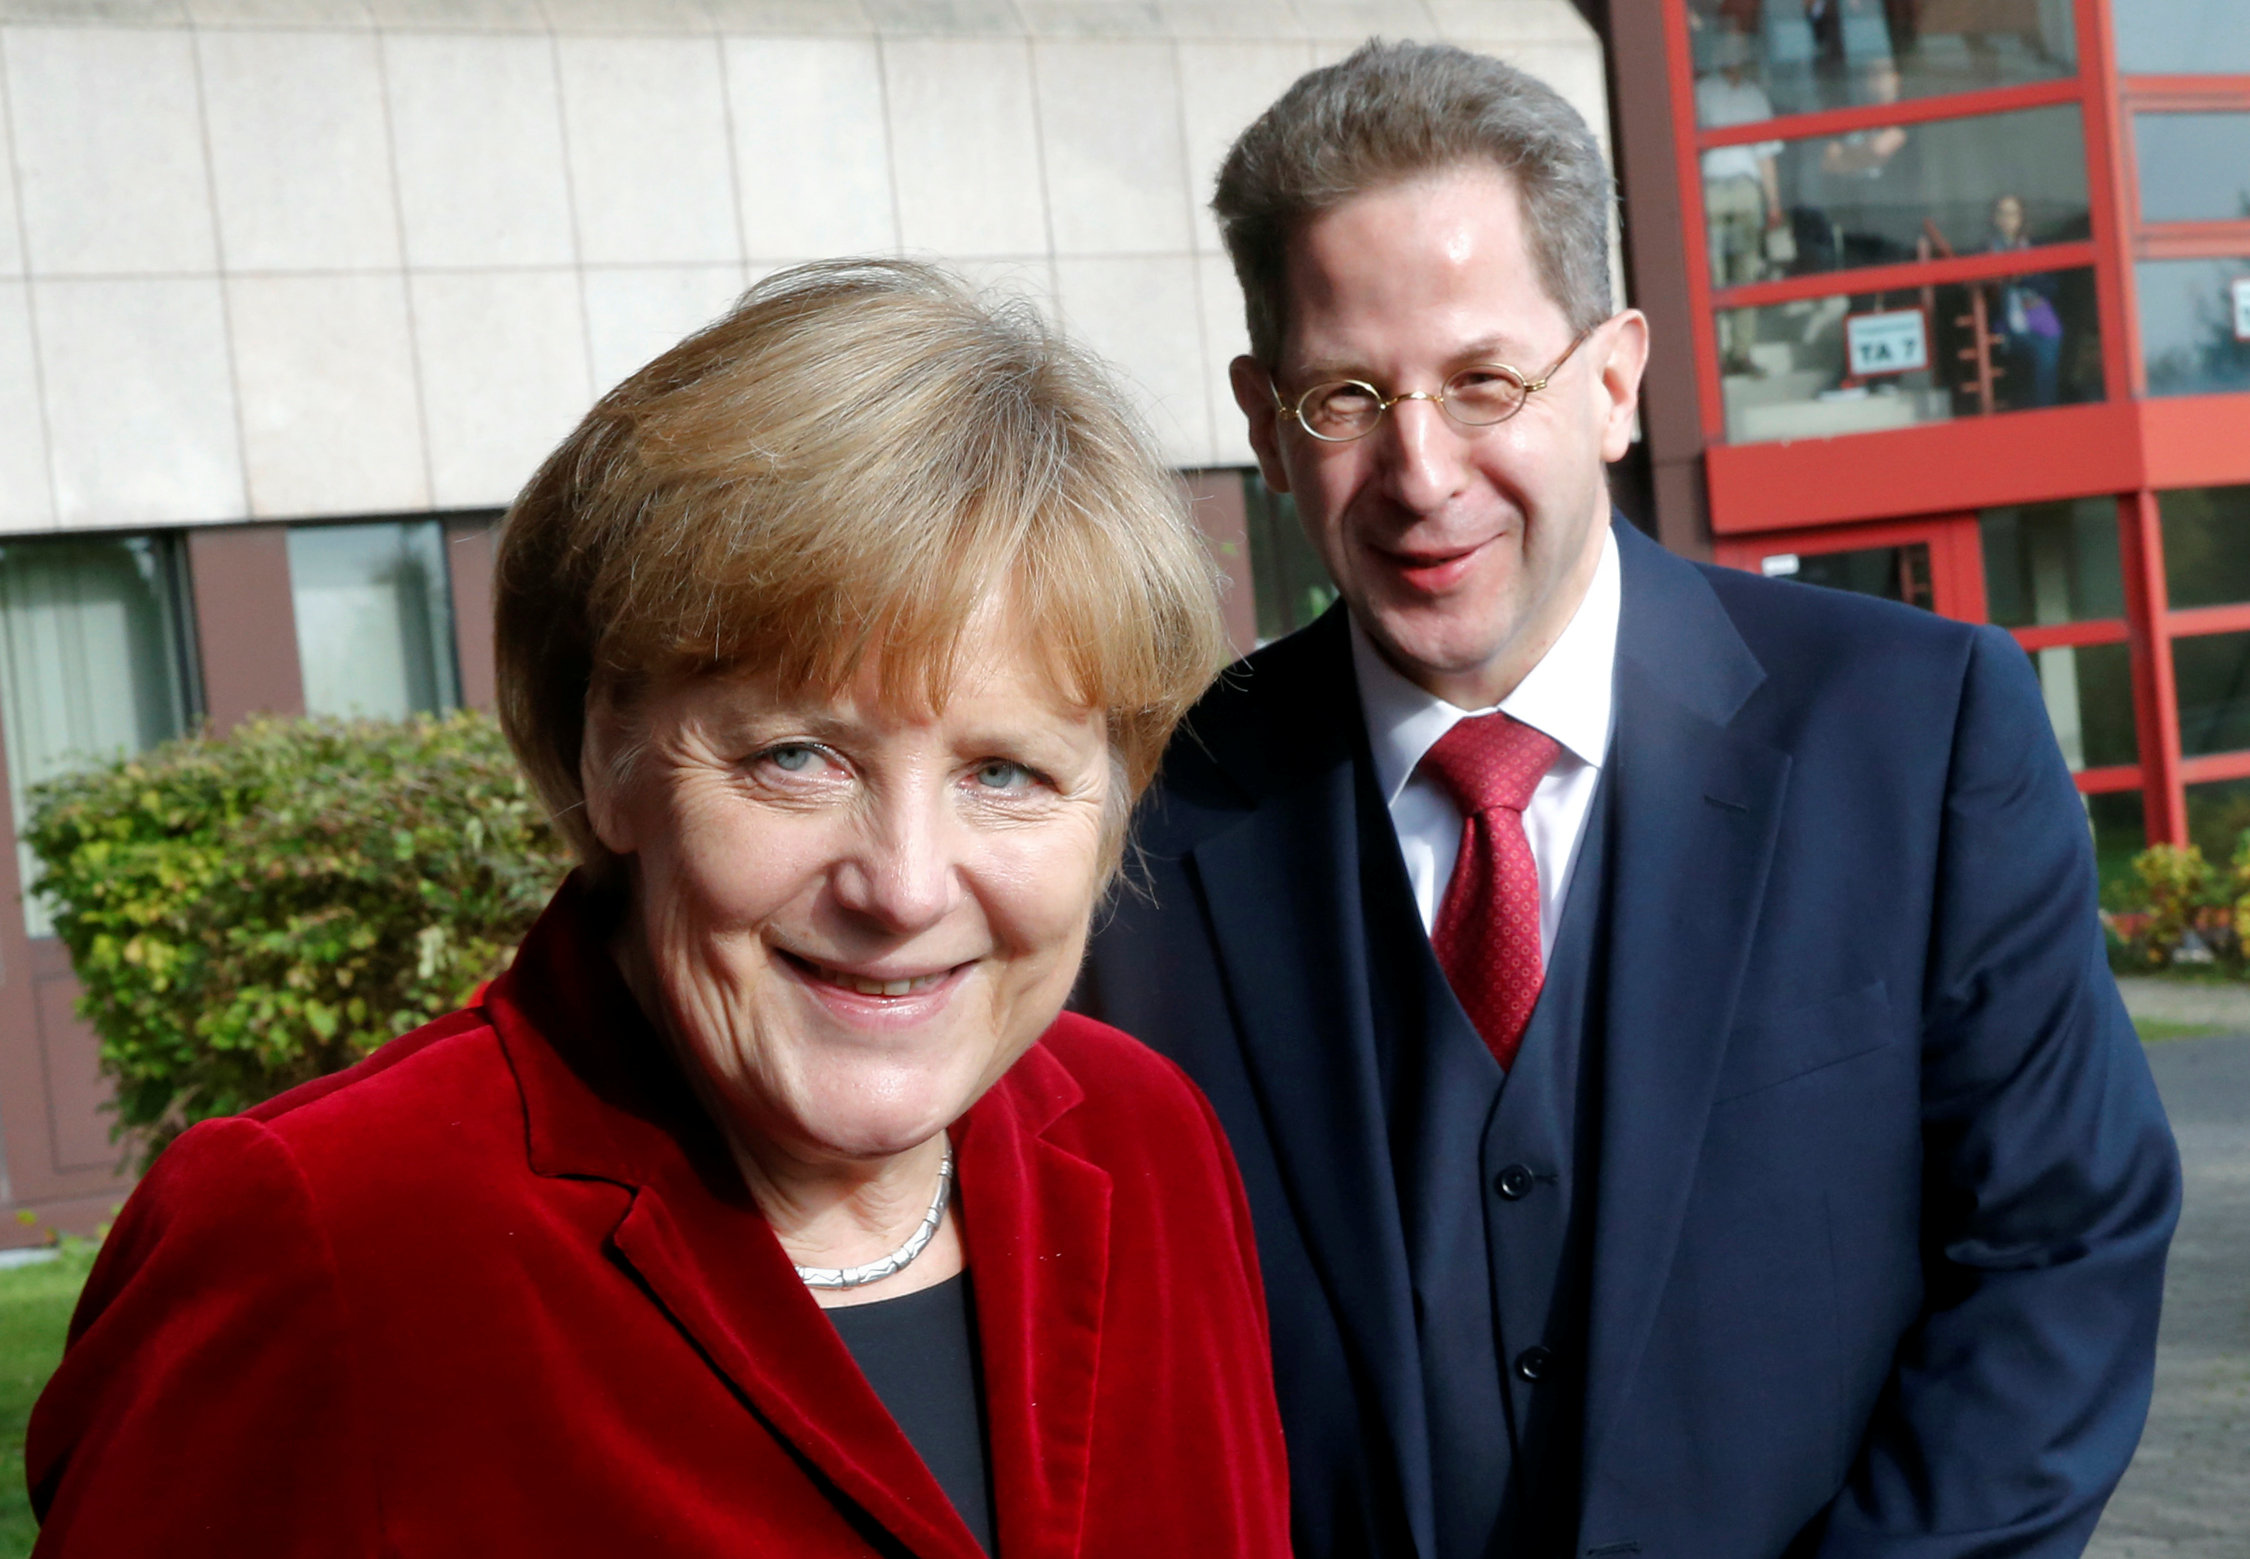 FILE PHOTO: German Chancellor Angela Merkel and Hans-Georg Maassen, the President of the Federal Office for the Protection of the Constitution, Germany's domestic security agency in Cologne, Germany October 31, 2014. REUTERS/Wolfgang Rattay/File Photo